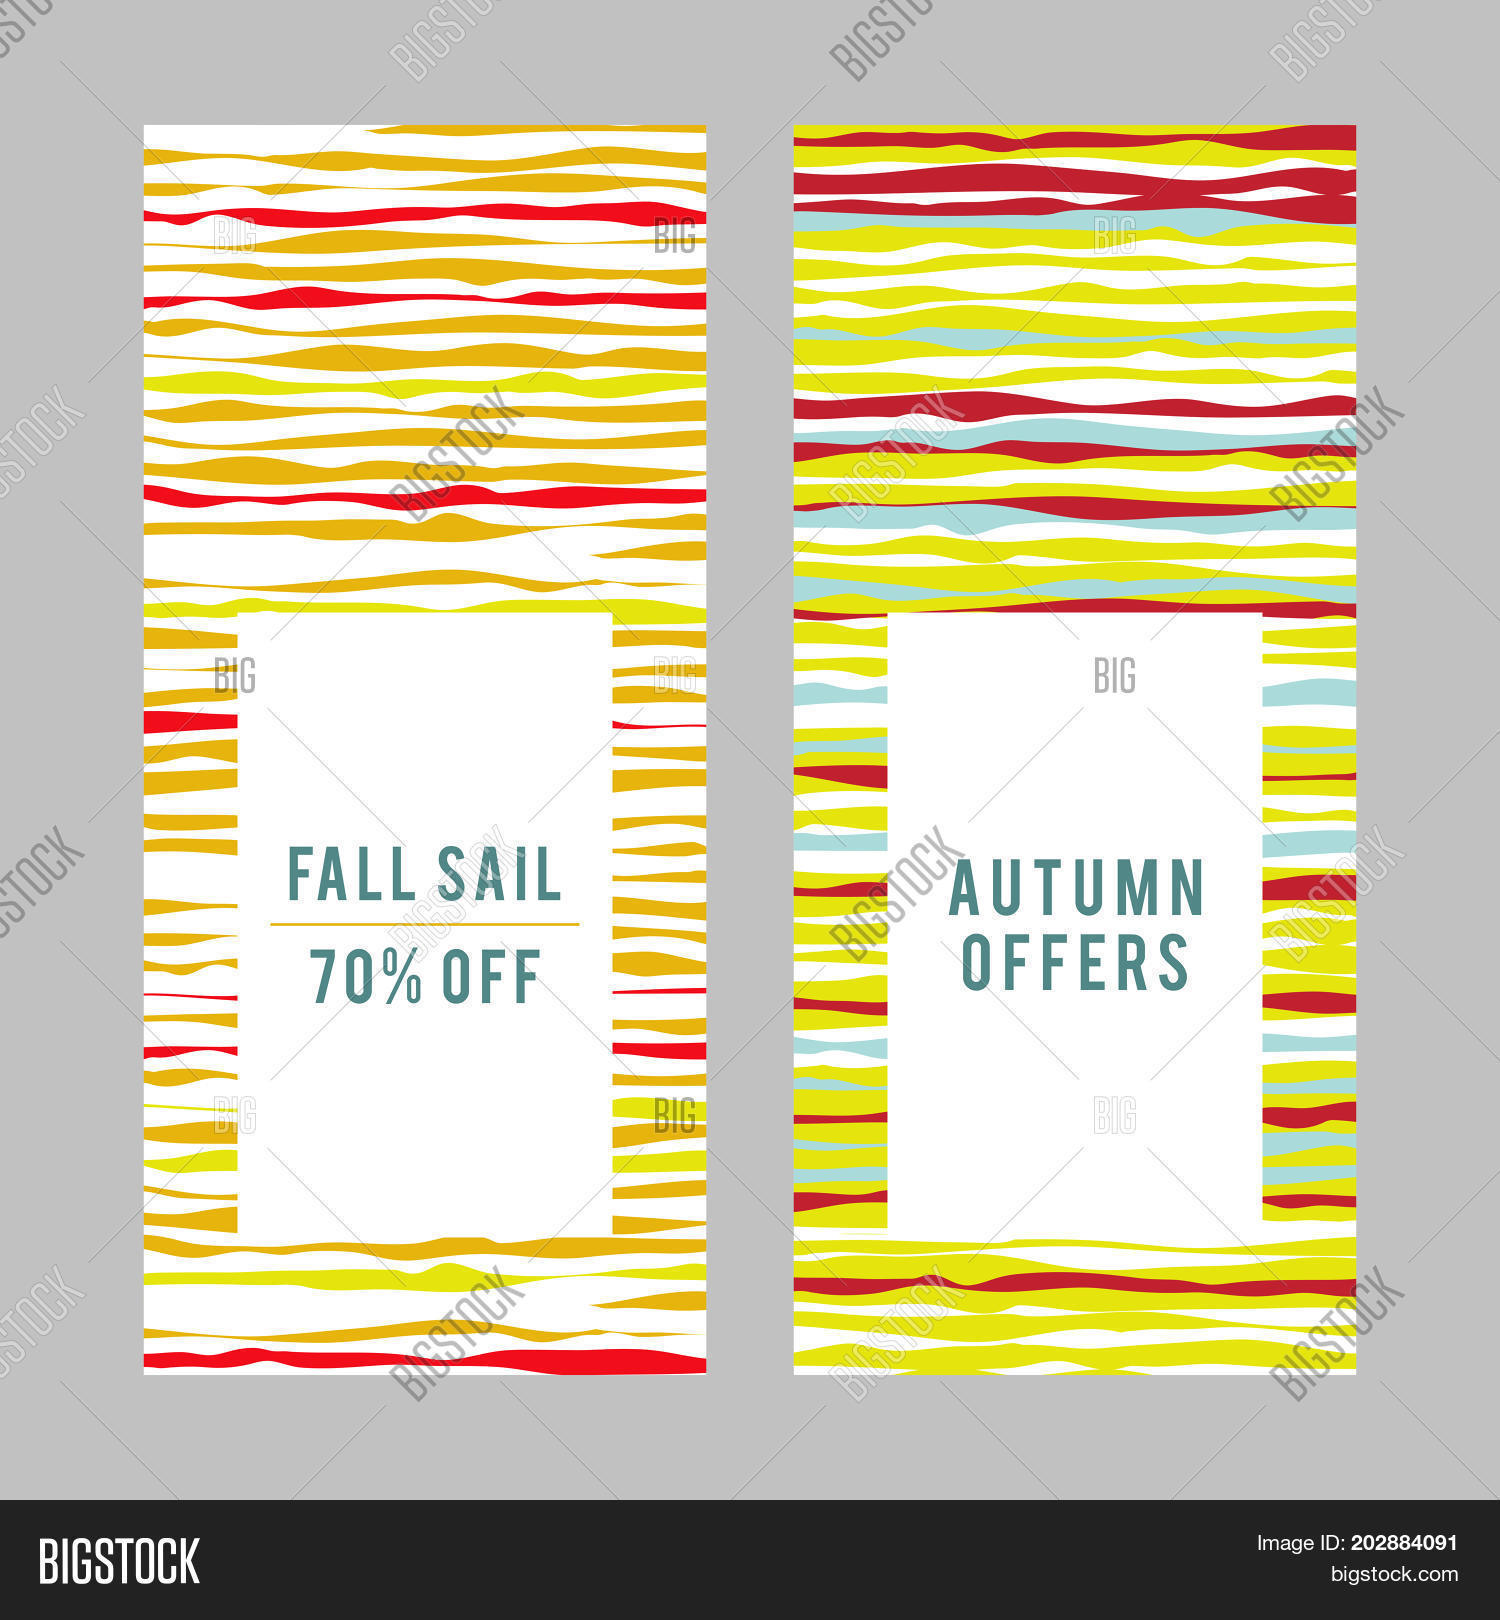 shopping sale design autumn offer banner copy space simple flyer design frame